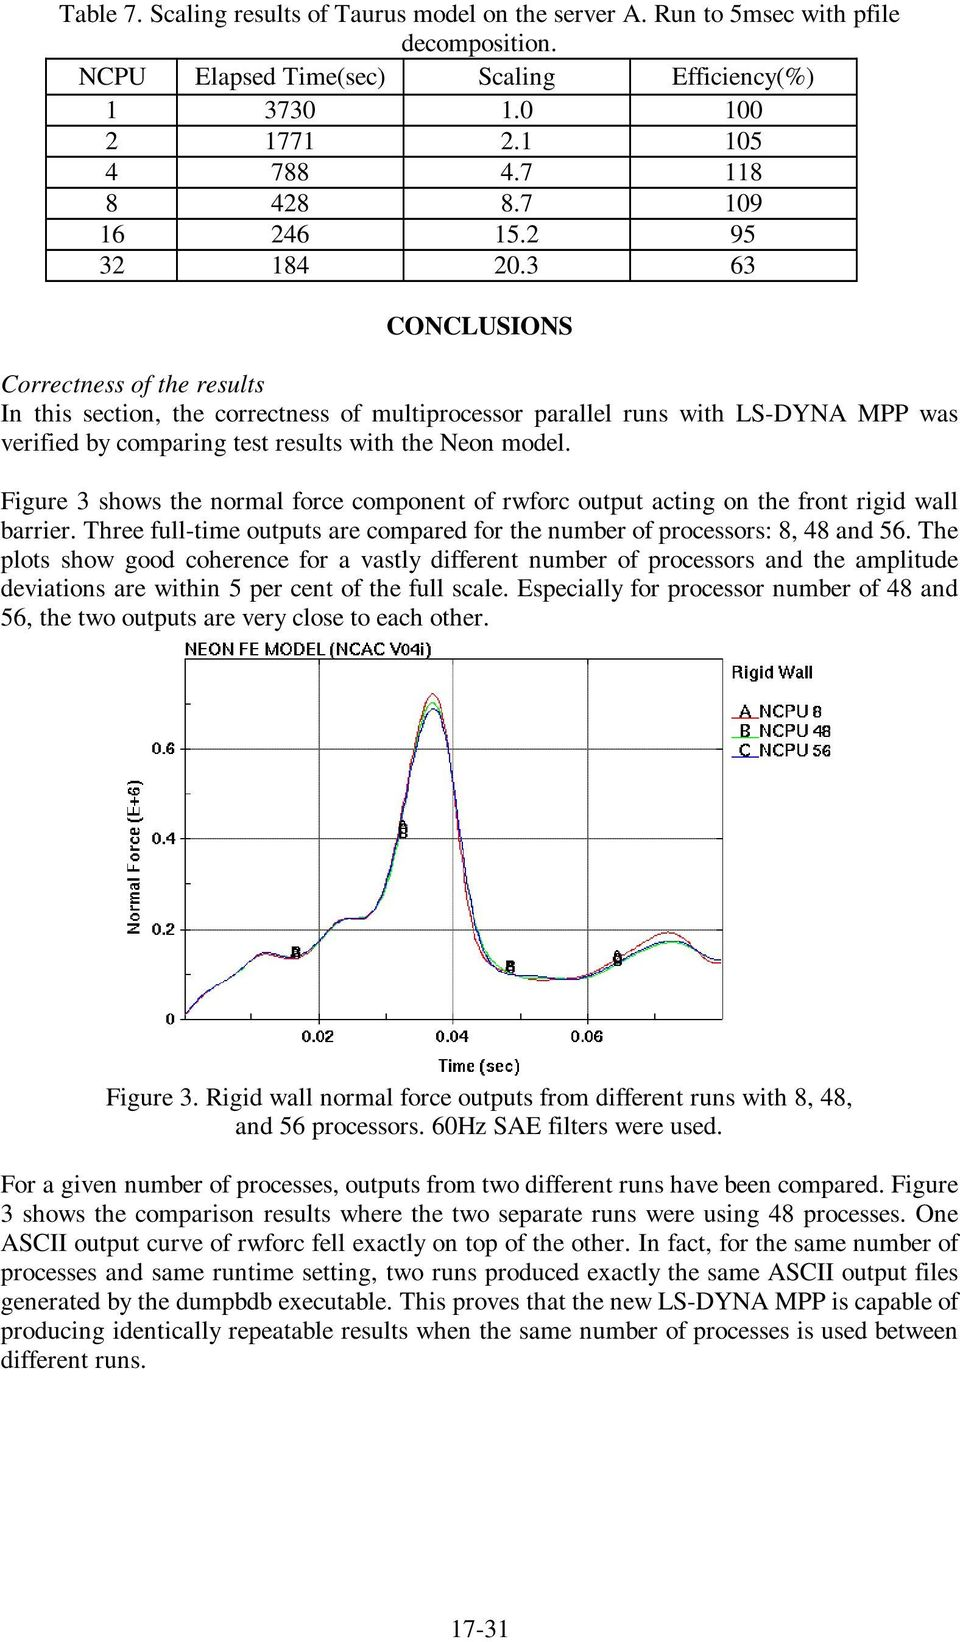 Scaling Study of LS-DYNA MPP on High Performance Servers - PDF